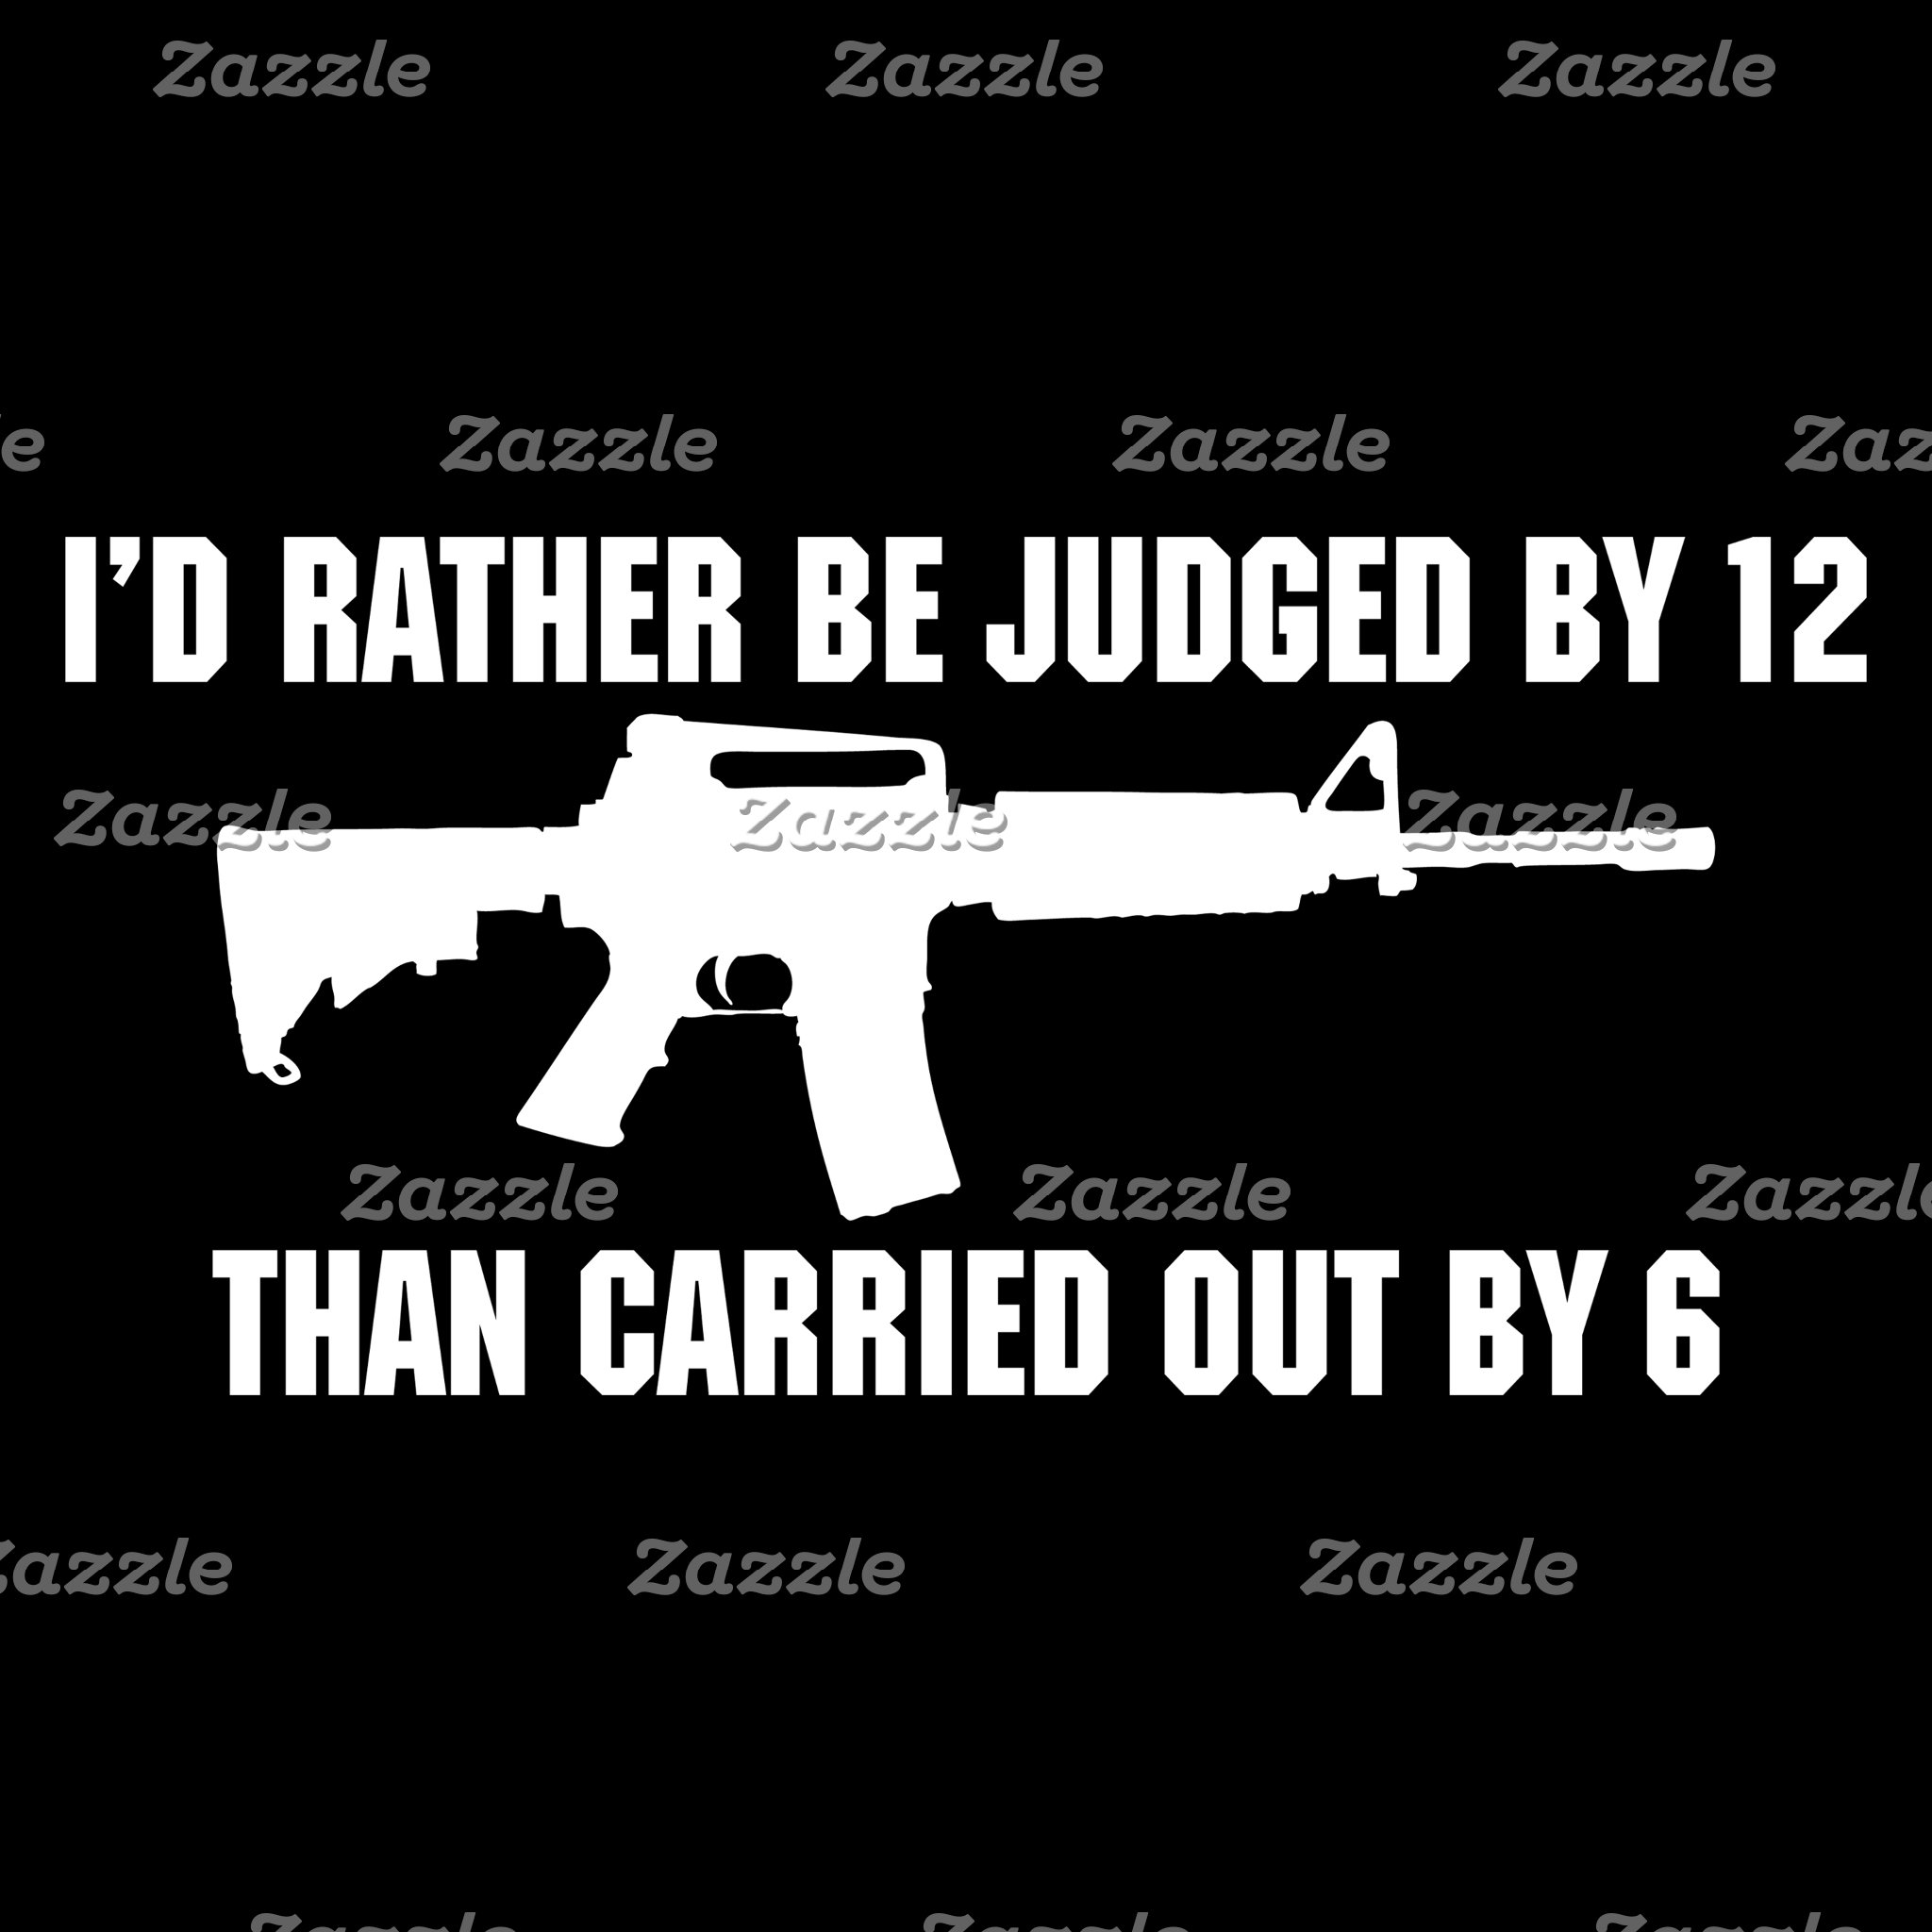 Judged by 12